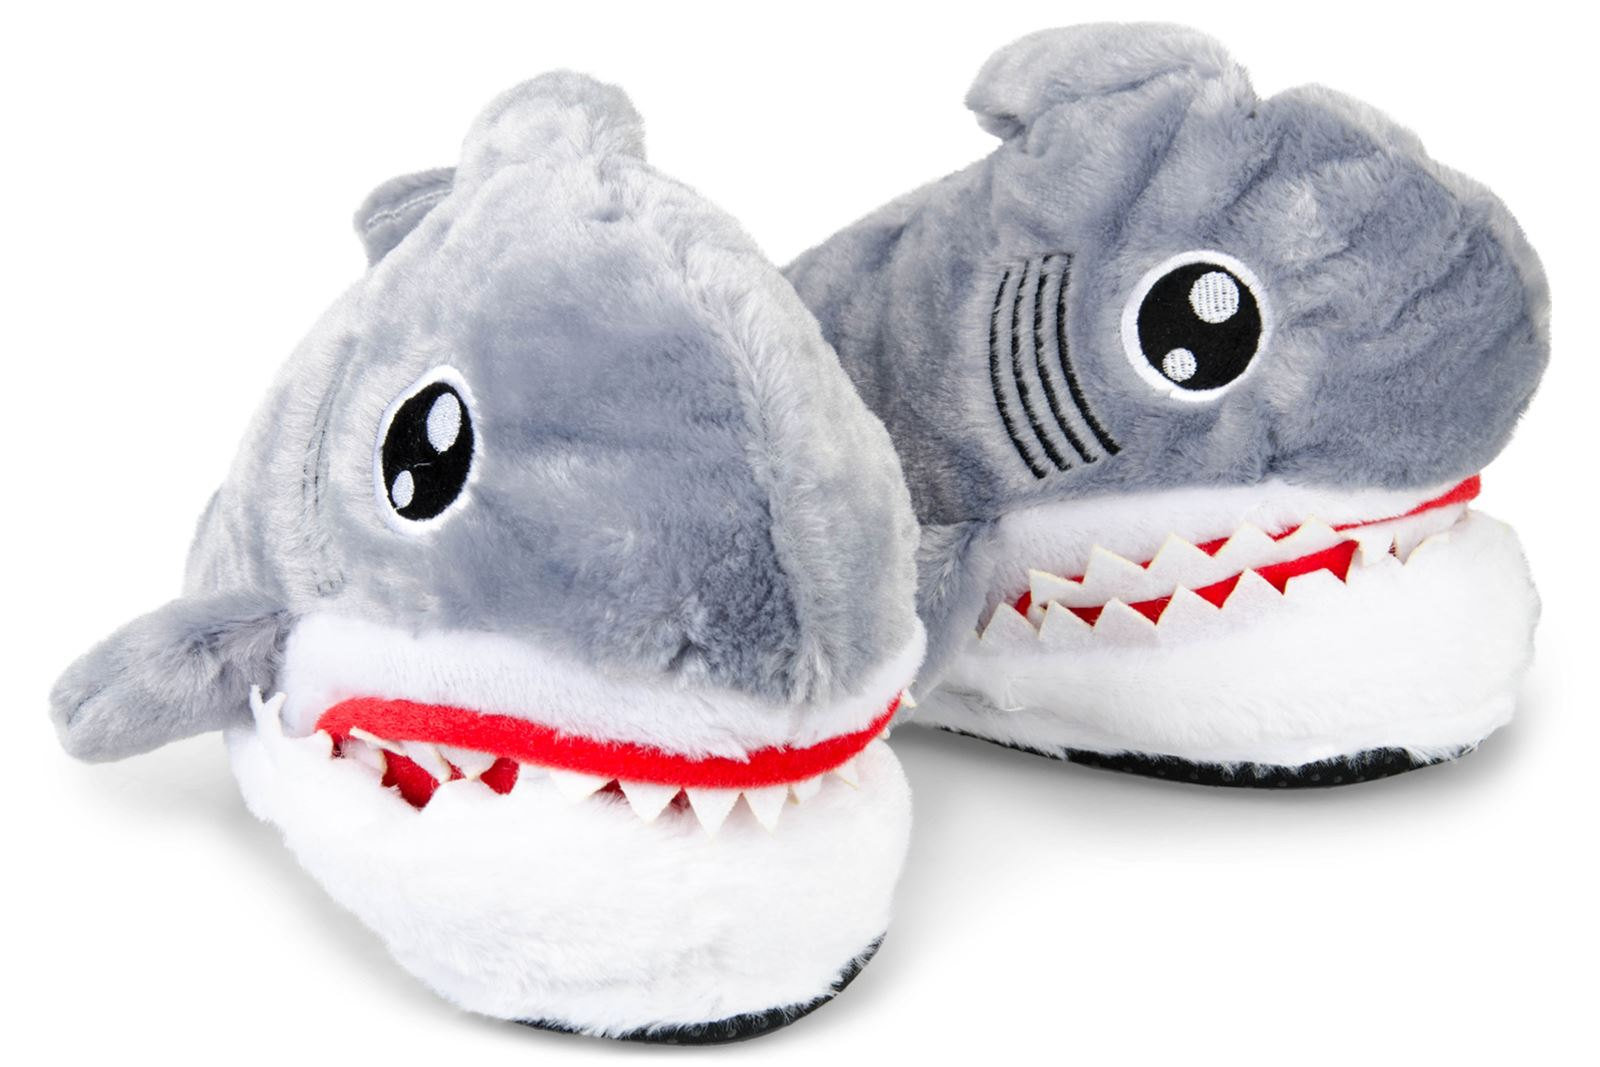 Shark Feet Eating Cute Plush Sharks Head Slippers Ebay